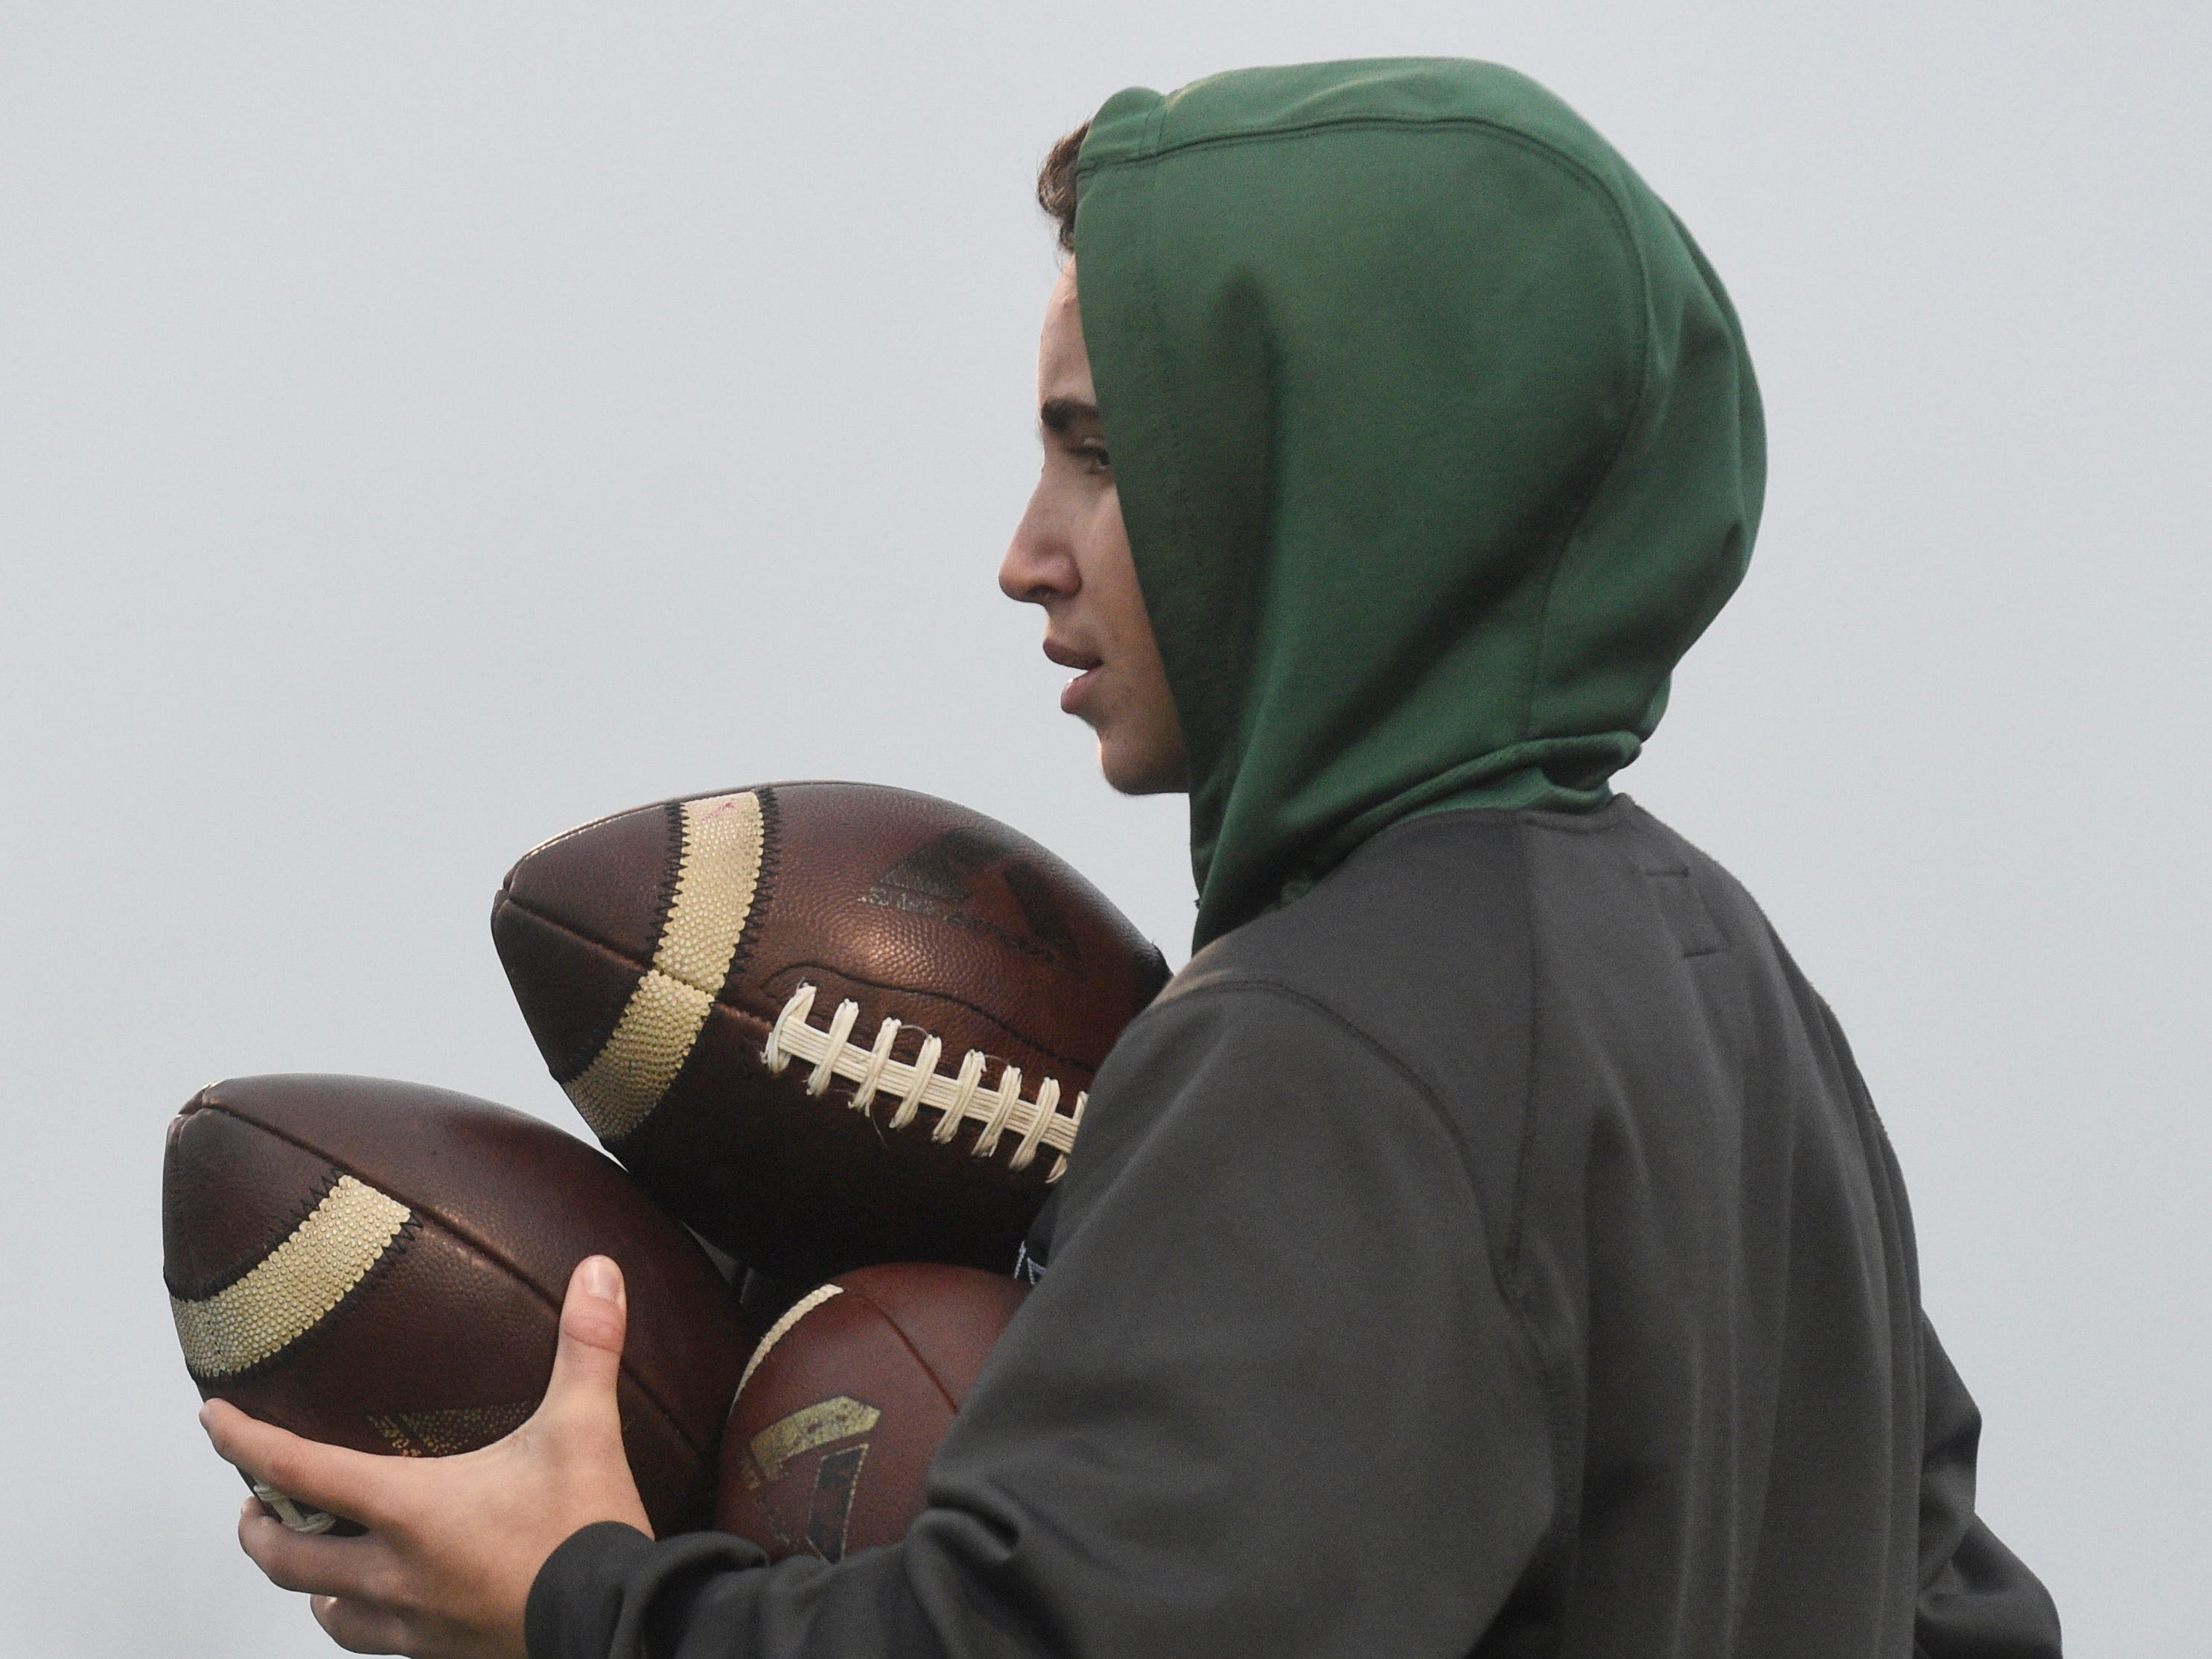 A Greeneville ball boy carries several balls before the Class 4A BlueCross Bowl state championship at Tennessee Tech's Tucker Stadium in Cookeville, Tenn., on Thursday, Nov. 29, 2018.